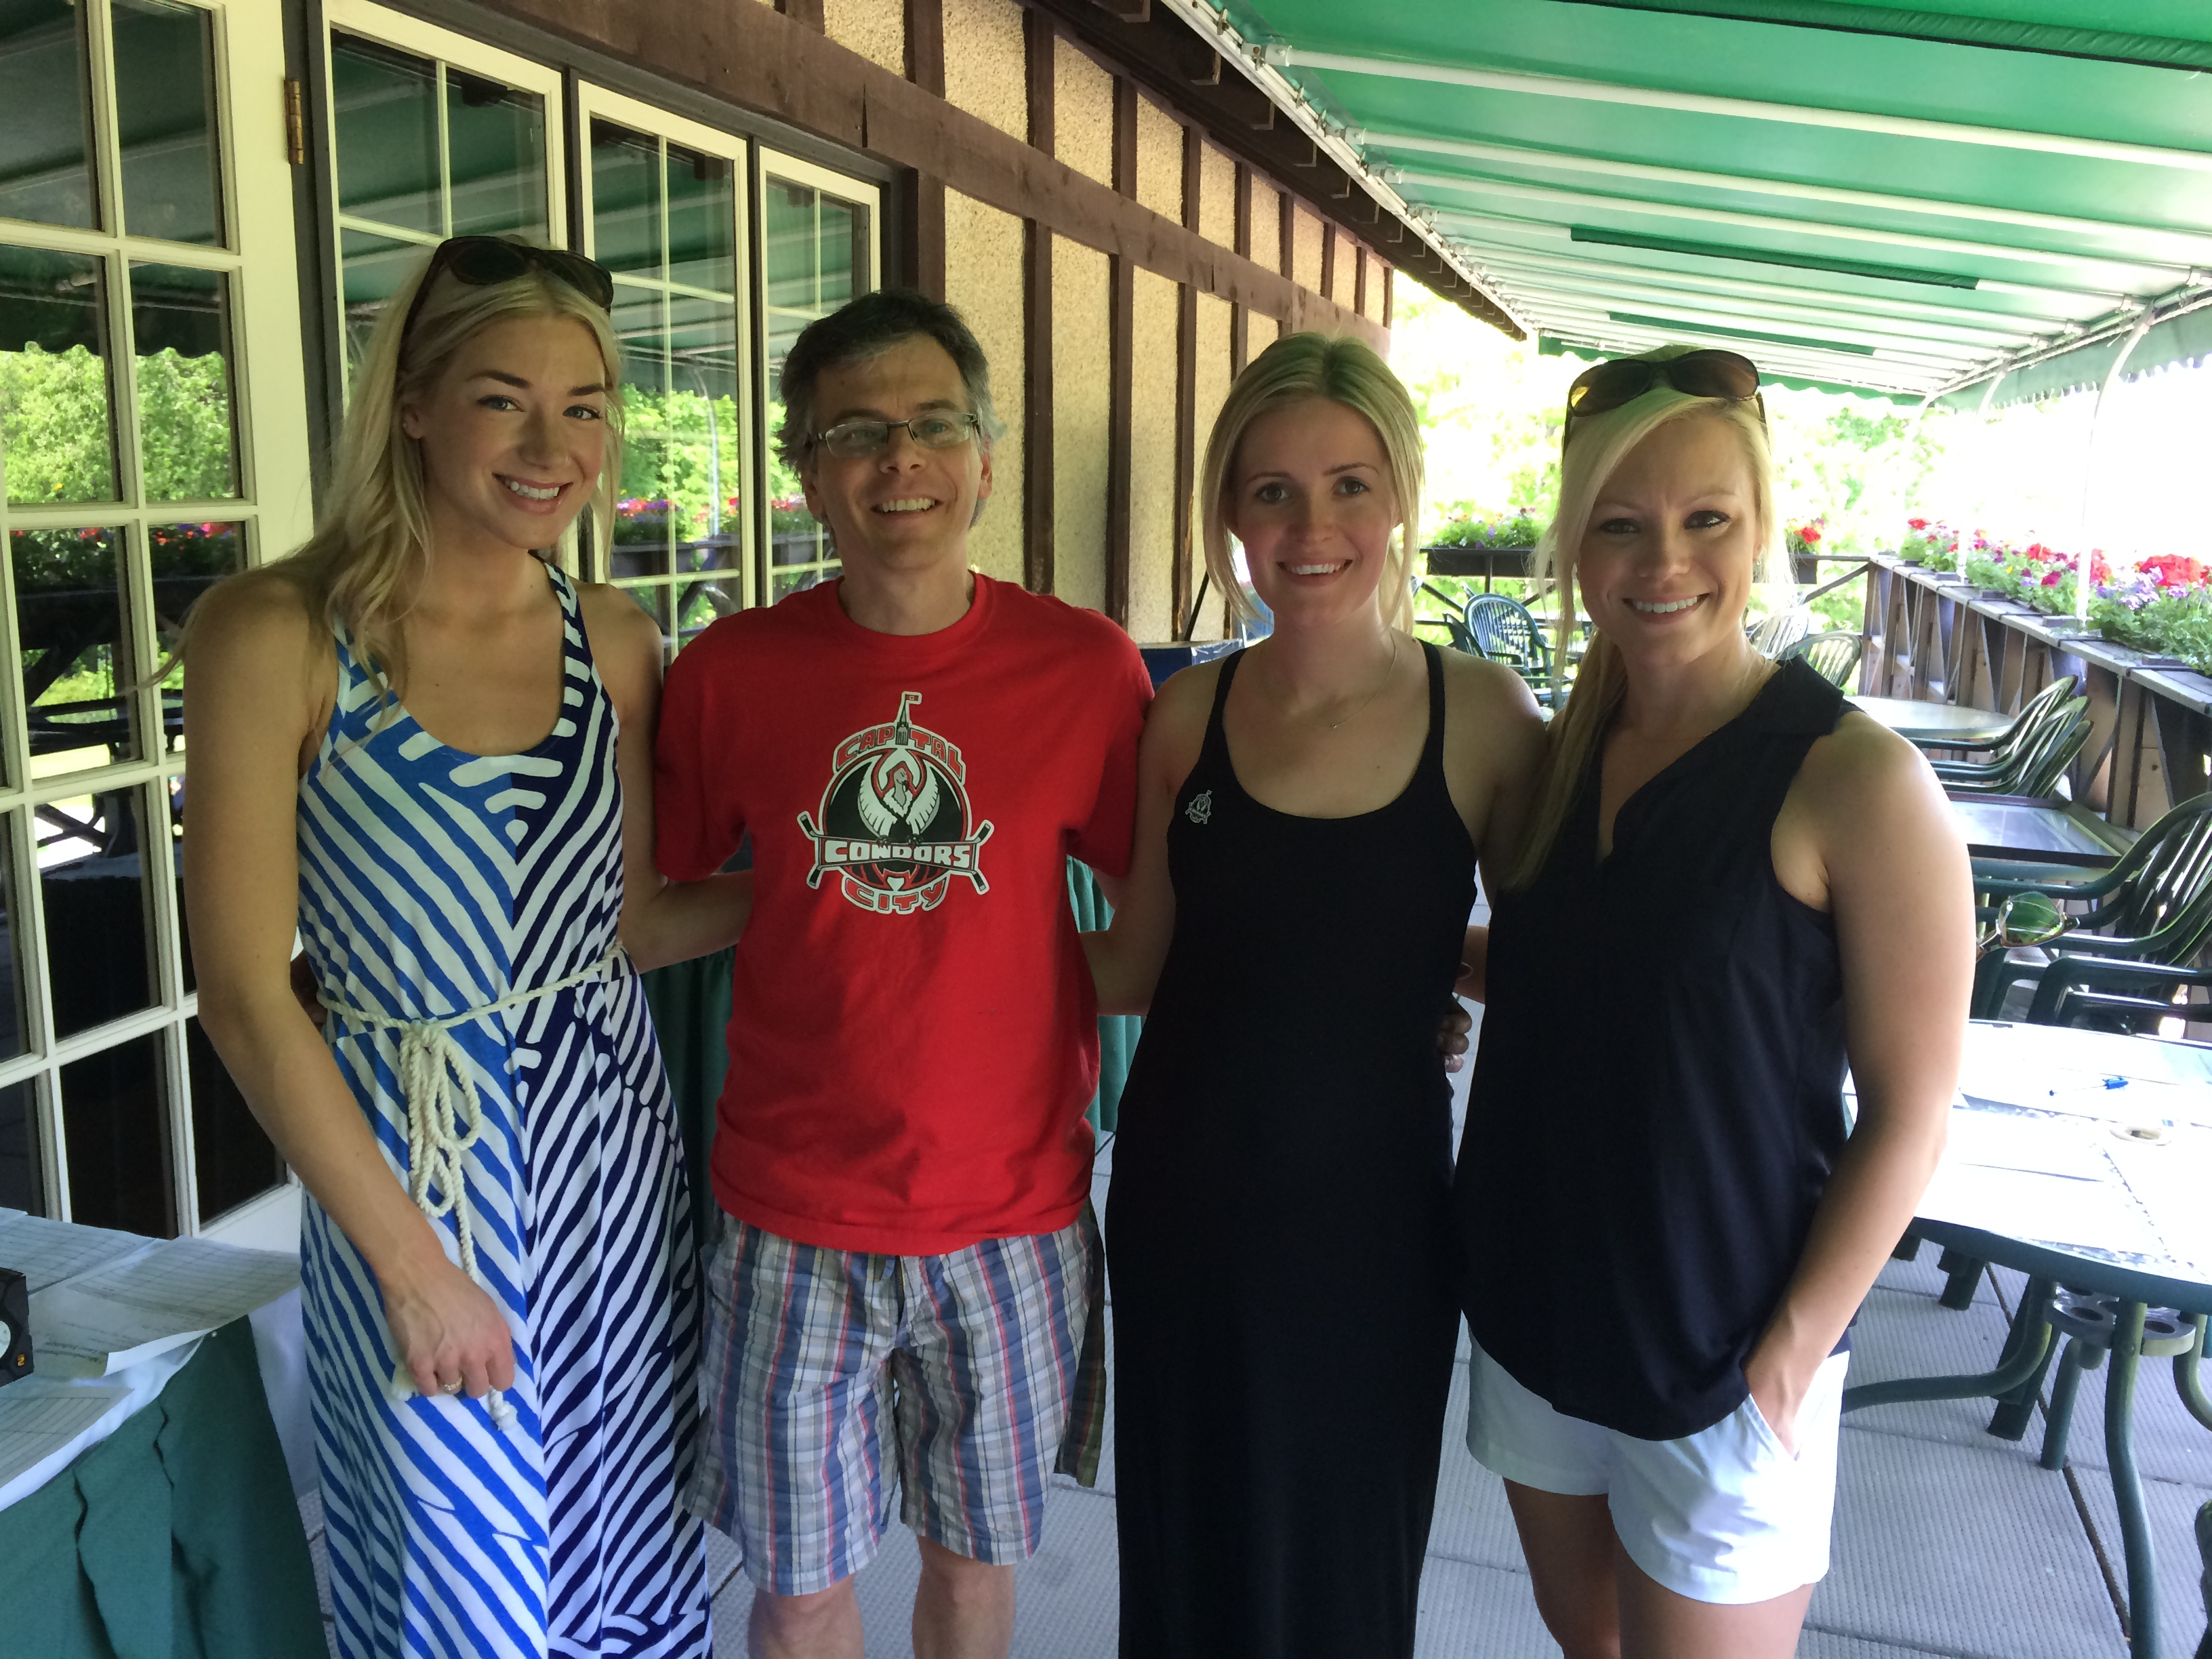 Thanks to Mark (golf tourney chair), Kresson, Julie, & Amanda for their incredible support!